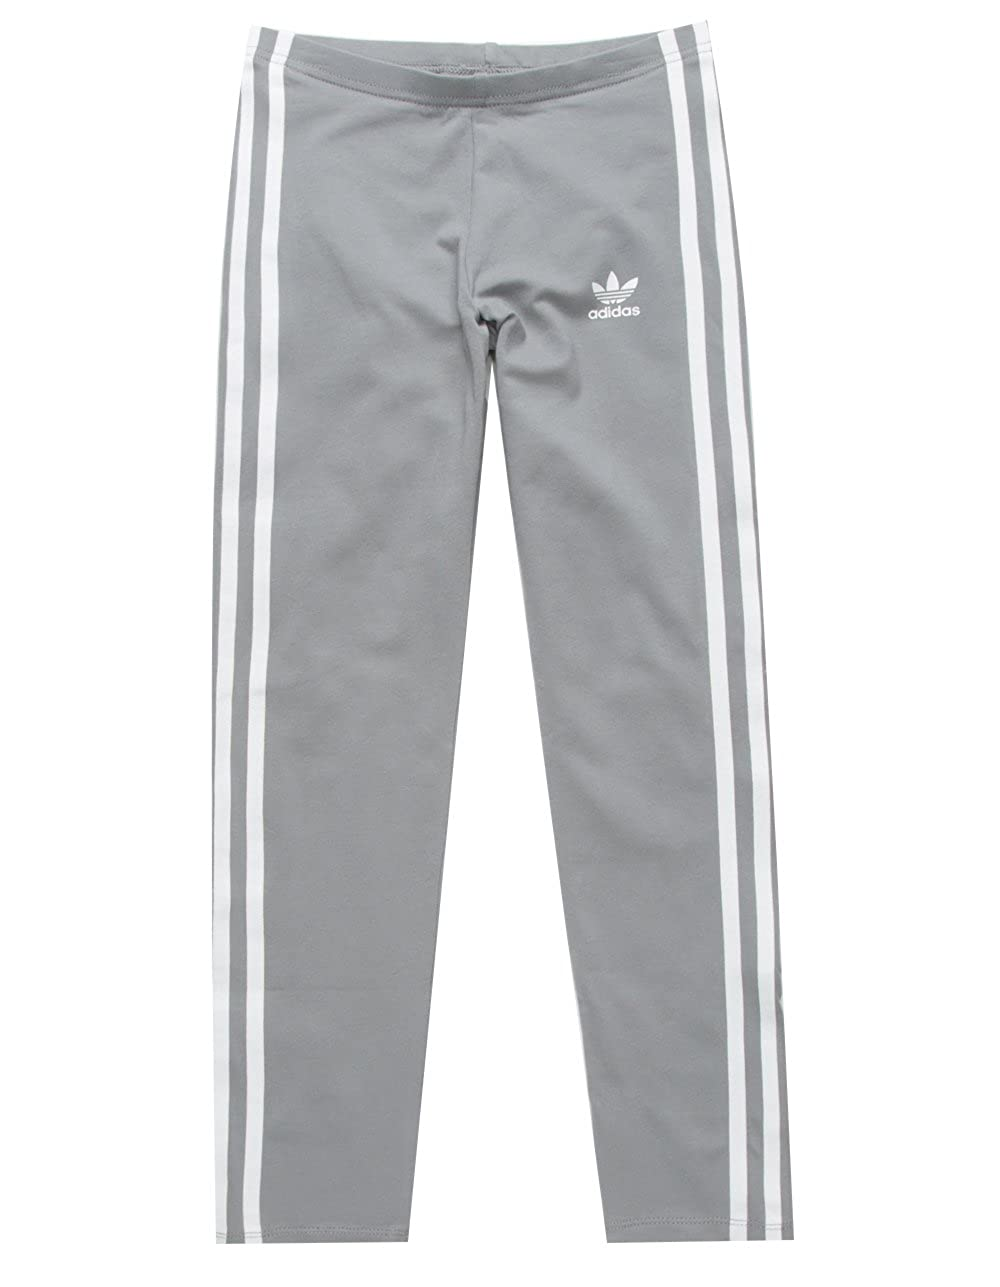 00299a94af668b Top 10 wholesale Adidas Leggings With Adidas On Leg - Chinabrands.com